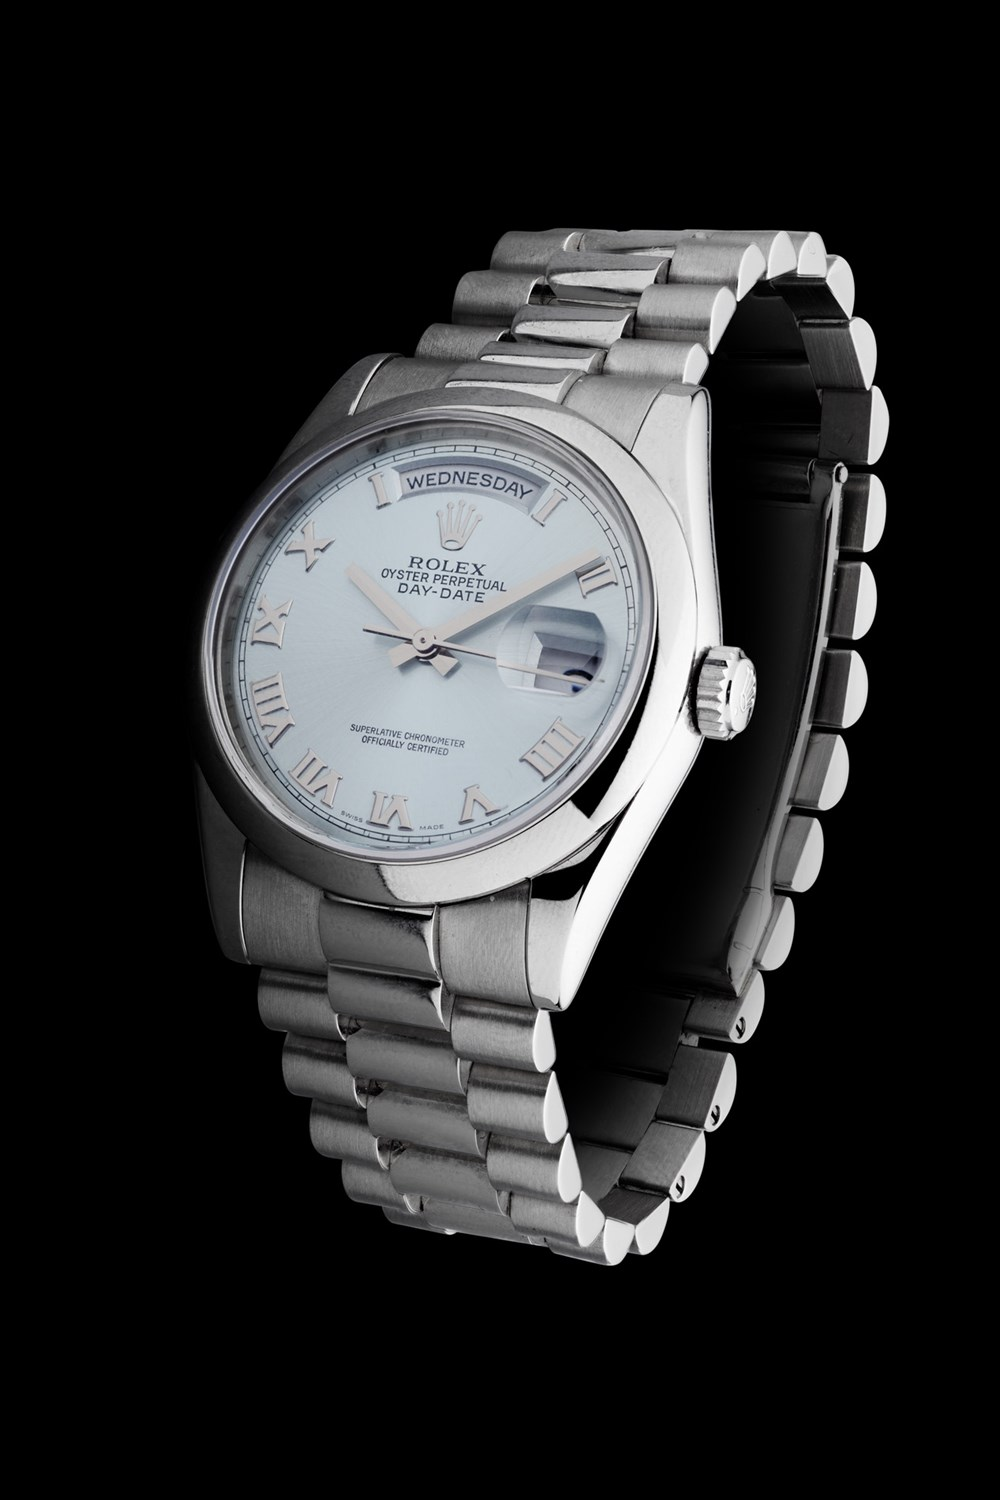 Lot 198 - ROLEX - Oyster Perpetual Daydate Chronometer in platinum